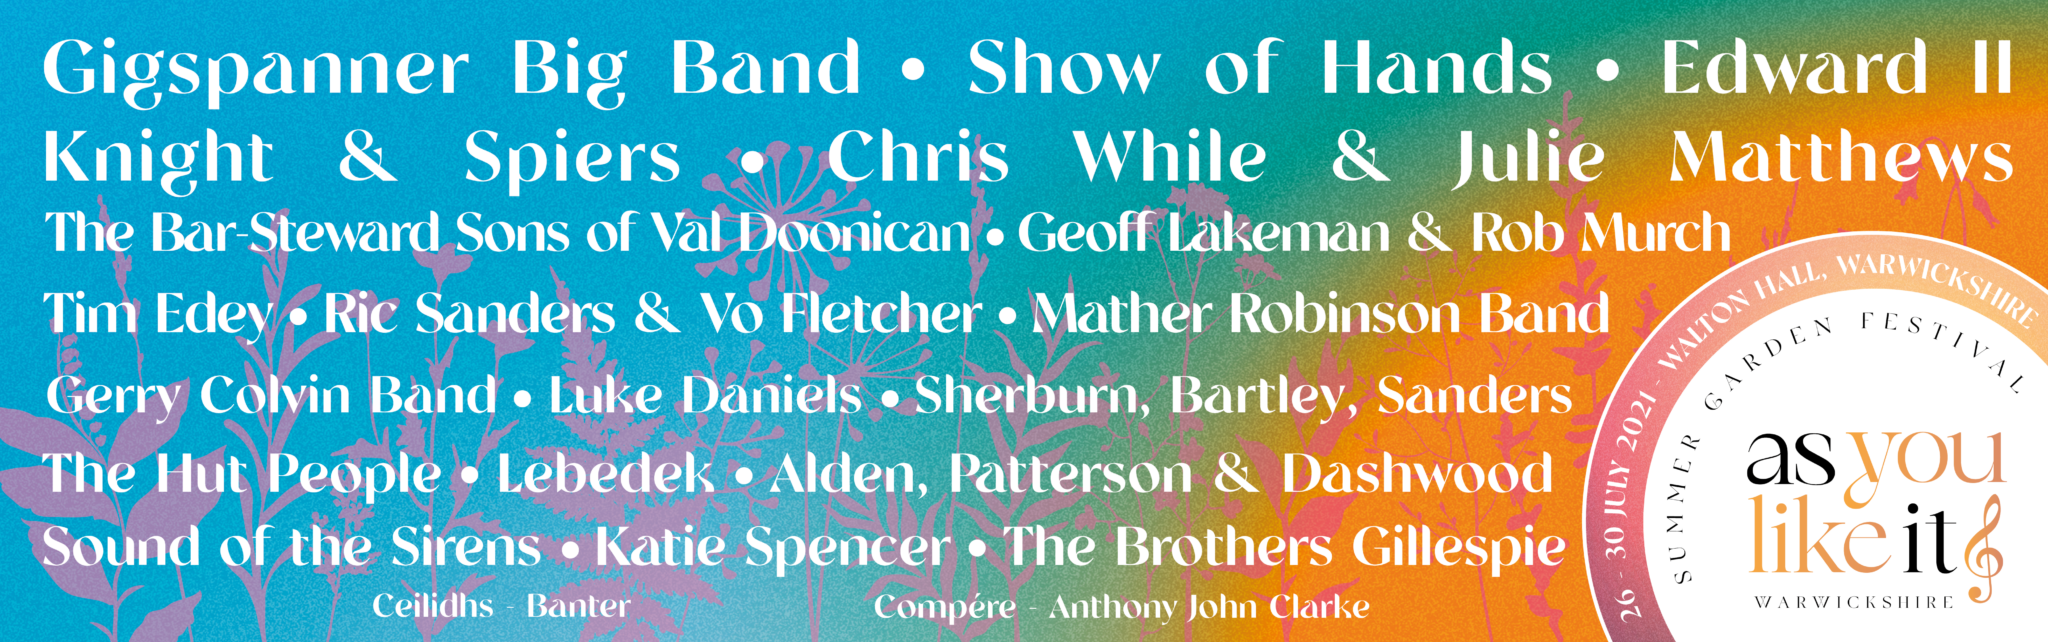 As You Like It Festival Line Up Website Banner